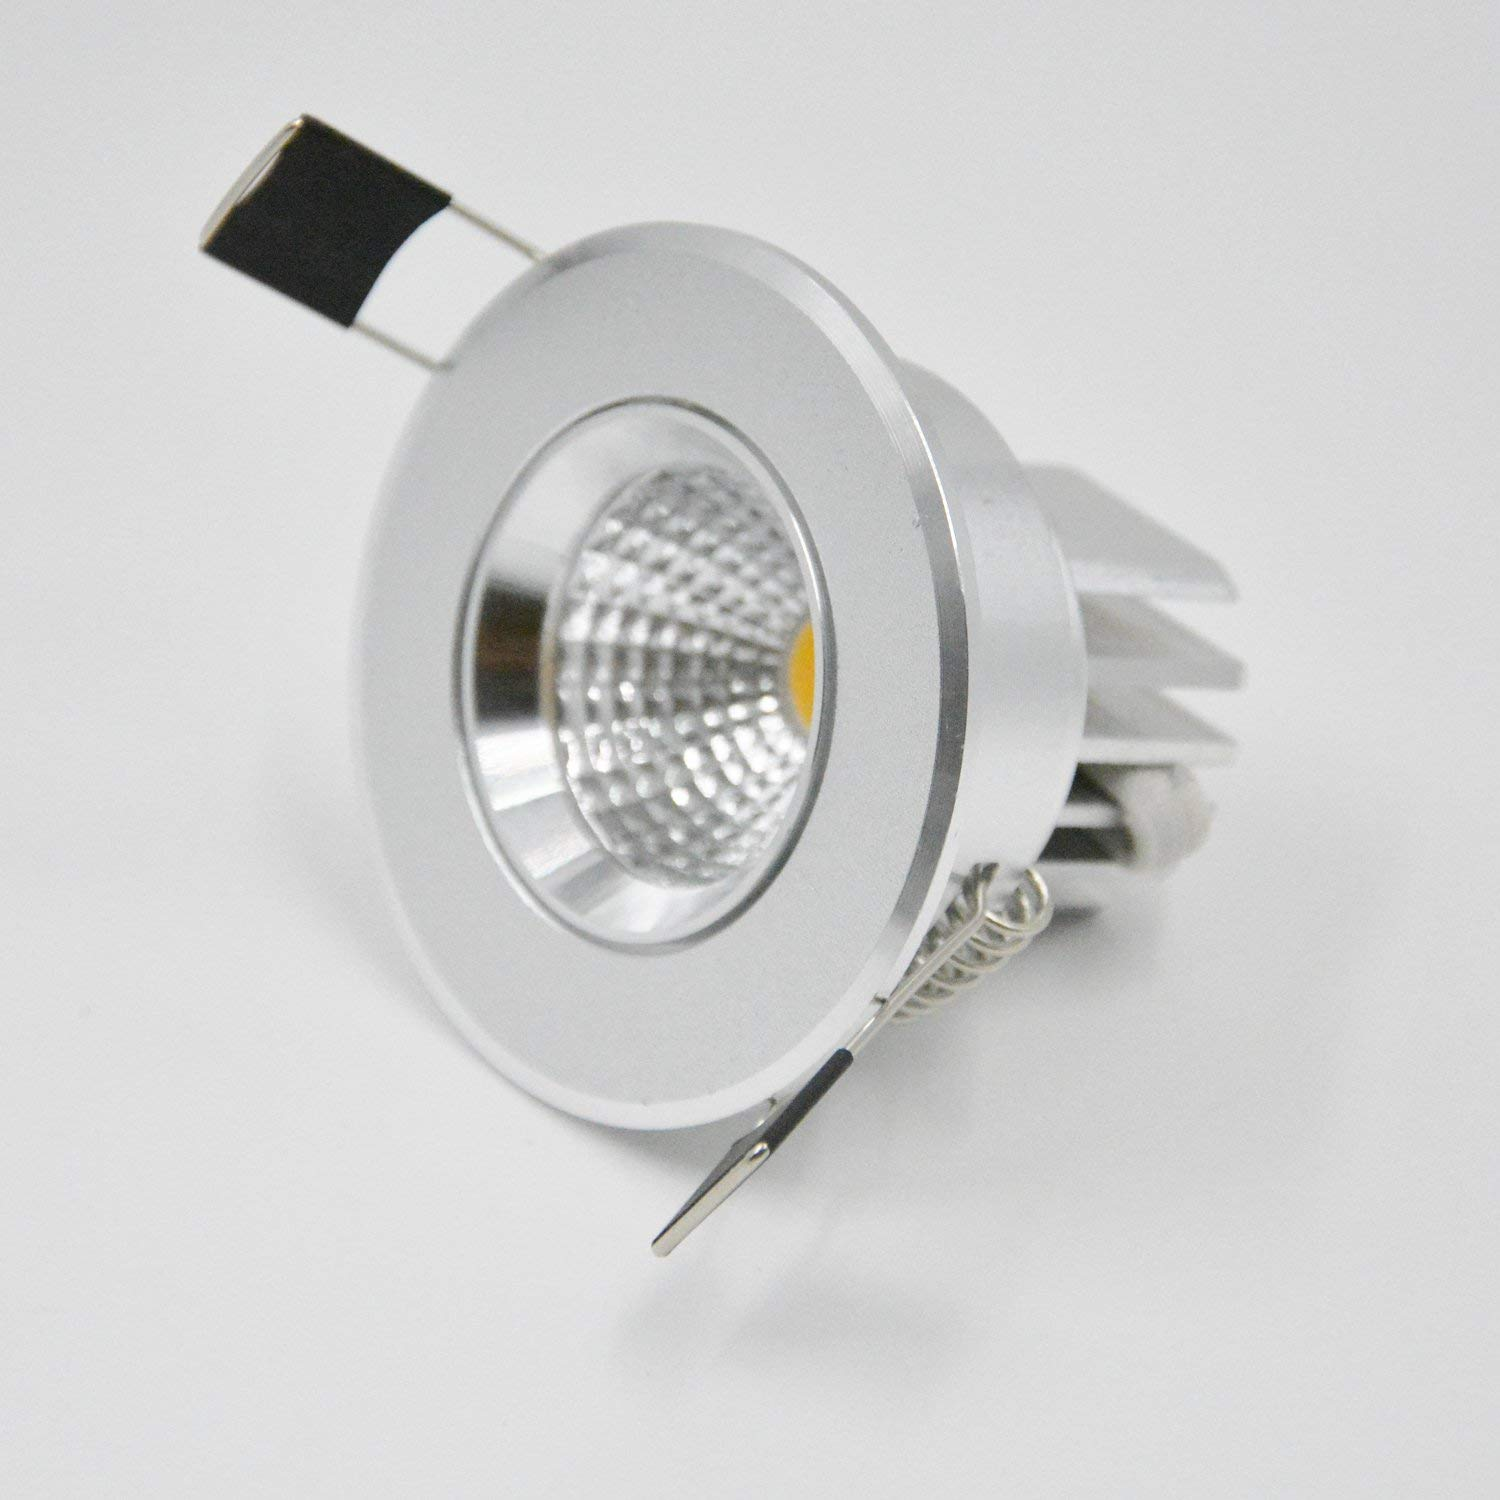 Get Quotations 2 2inch Led Downlight 5w 450lm Equivalent 40w Halogen Bulbs Warm White 3000k Retrofit Recessed